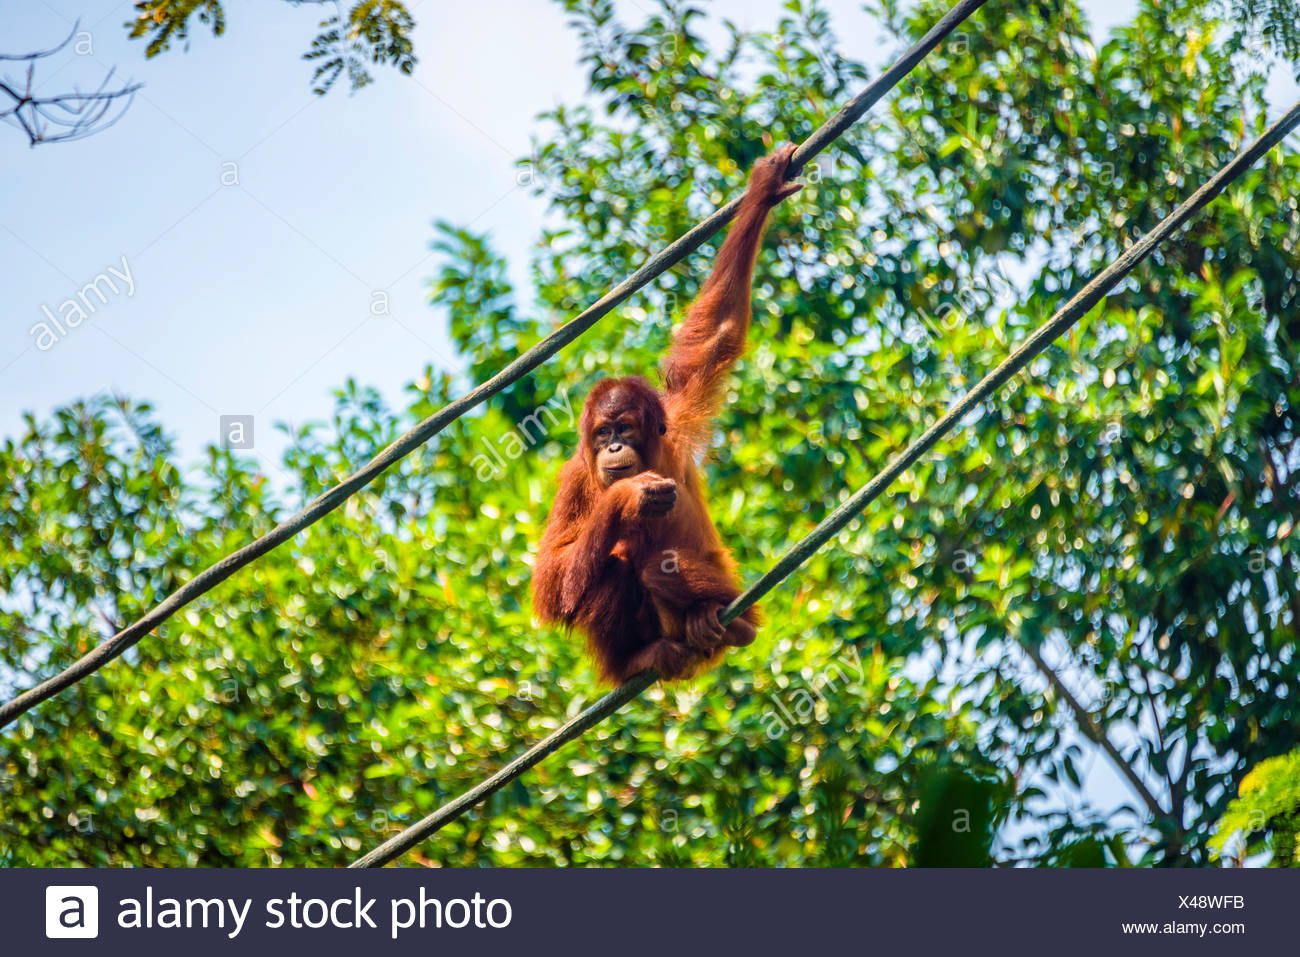 Borneo orangutan (Pongo pygmaeus) sitting on a rope, captive, Singapore zoo, Singapore - Stock Image